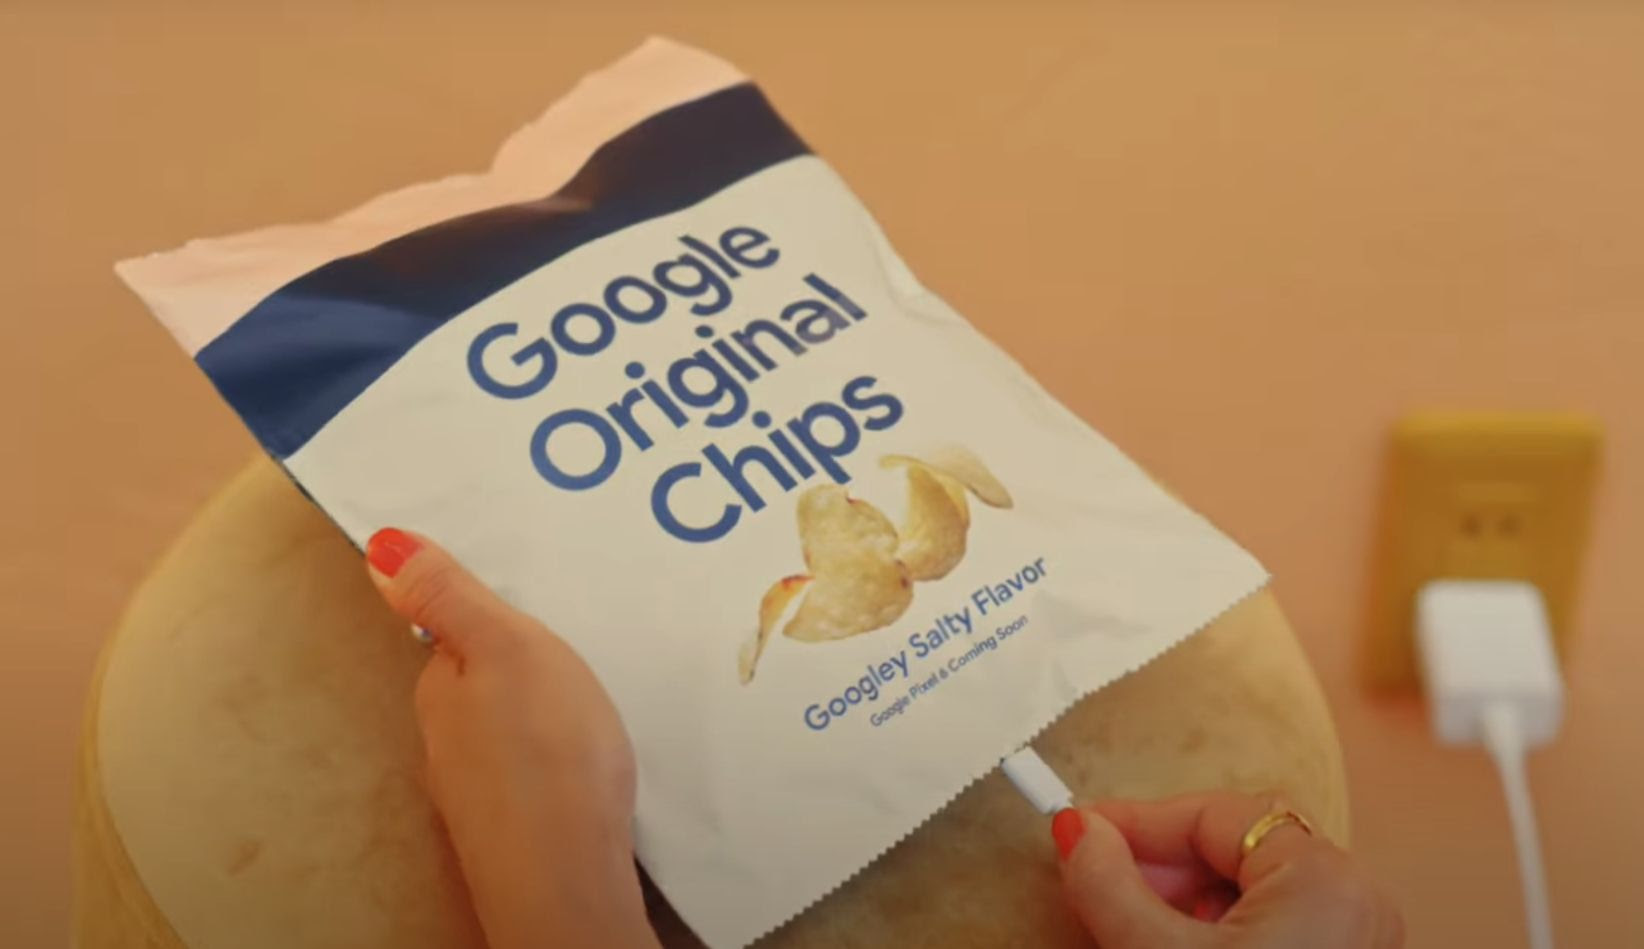 Yes, real Google Pixel 6 potato chips in Japan were briefly available. Tasty.